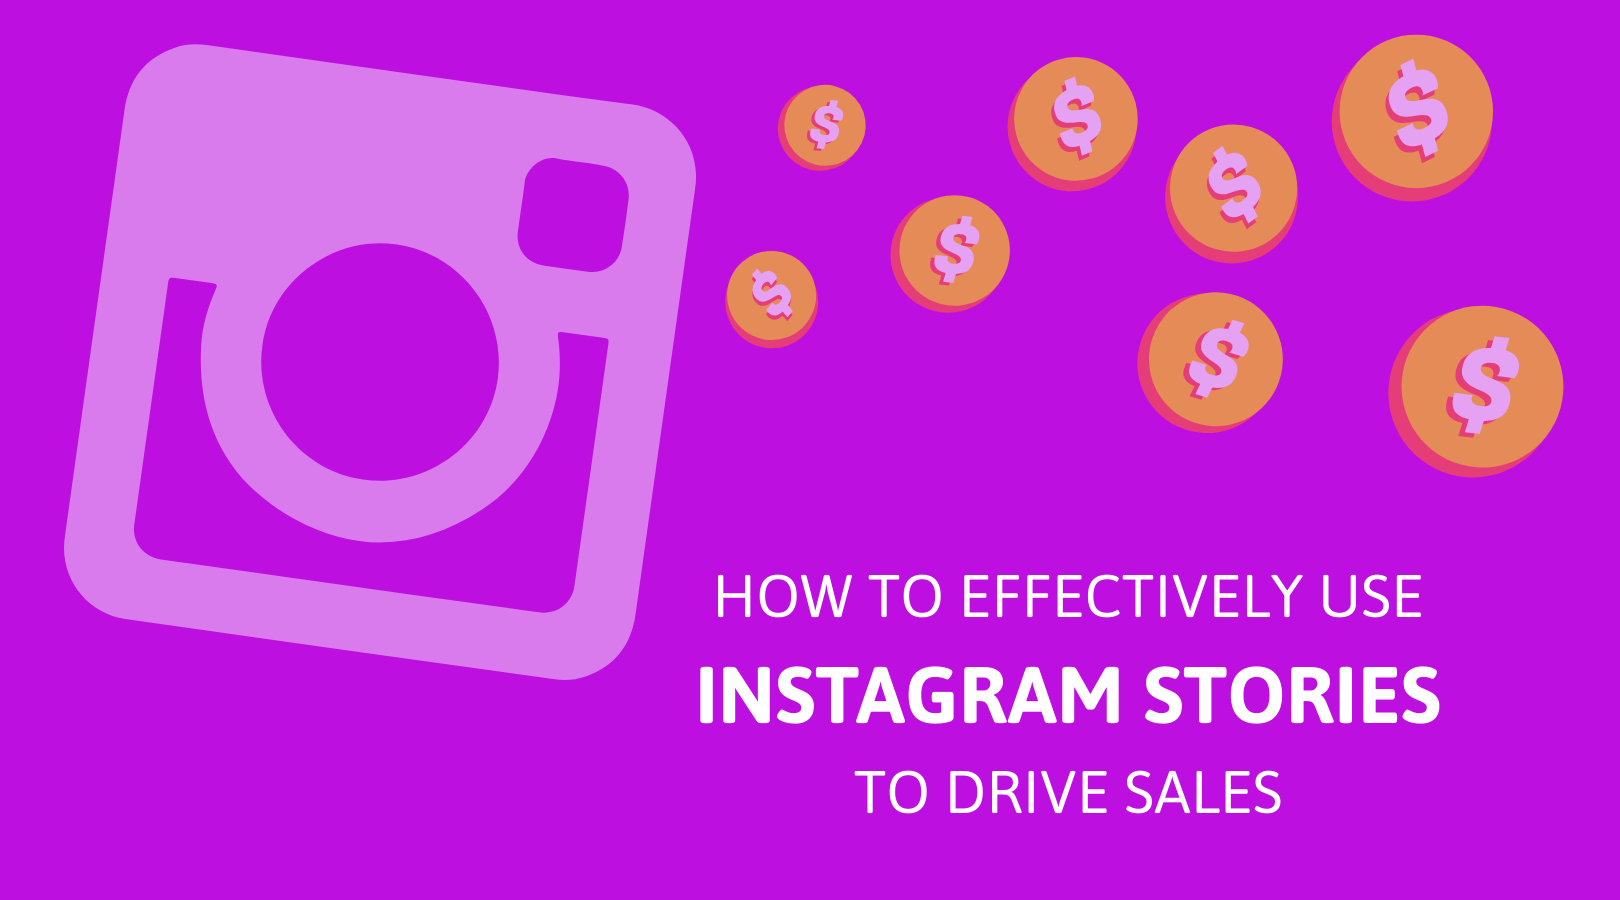 5 How to effectively use Instagram stories to drive sales